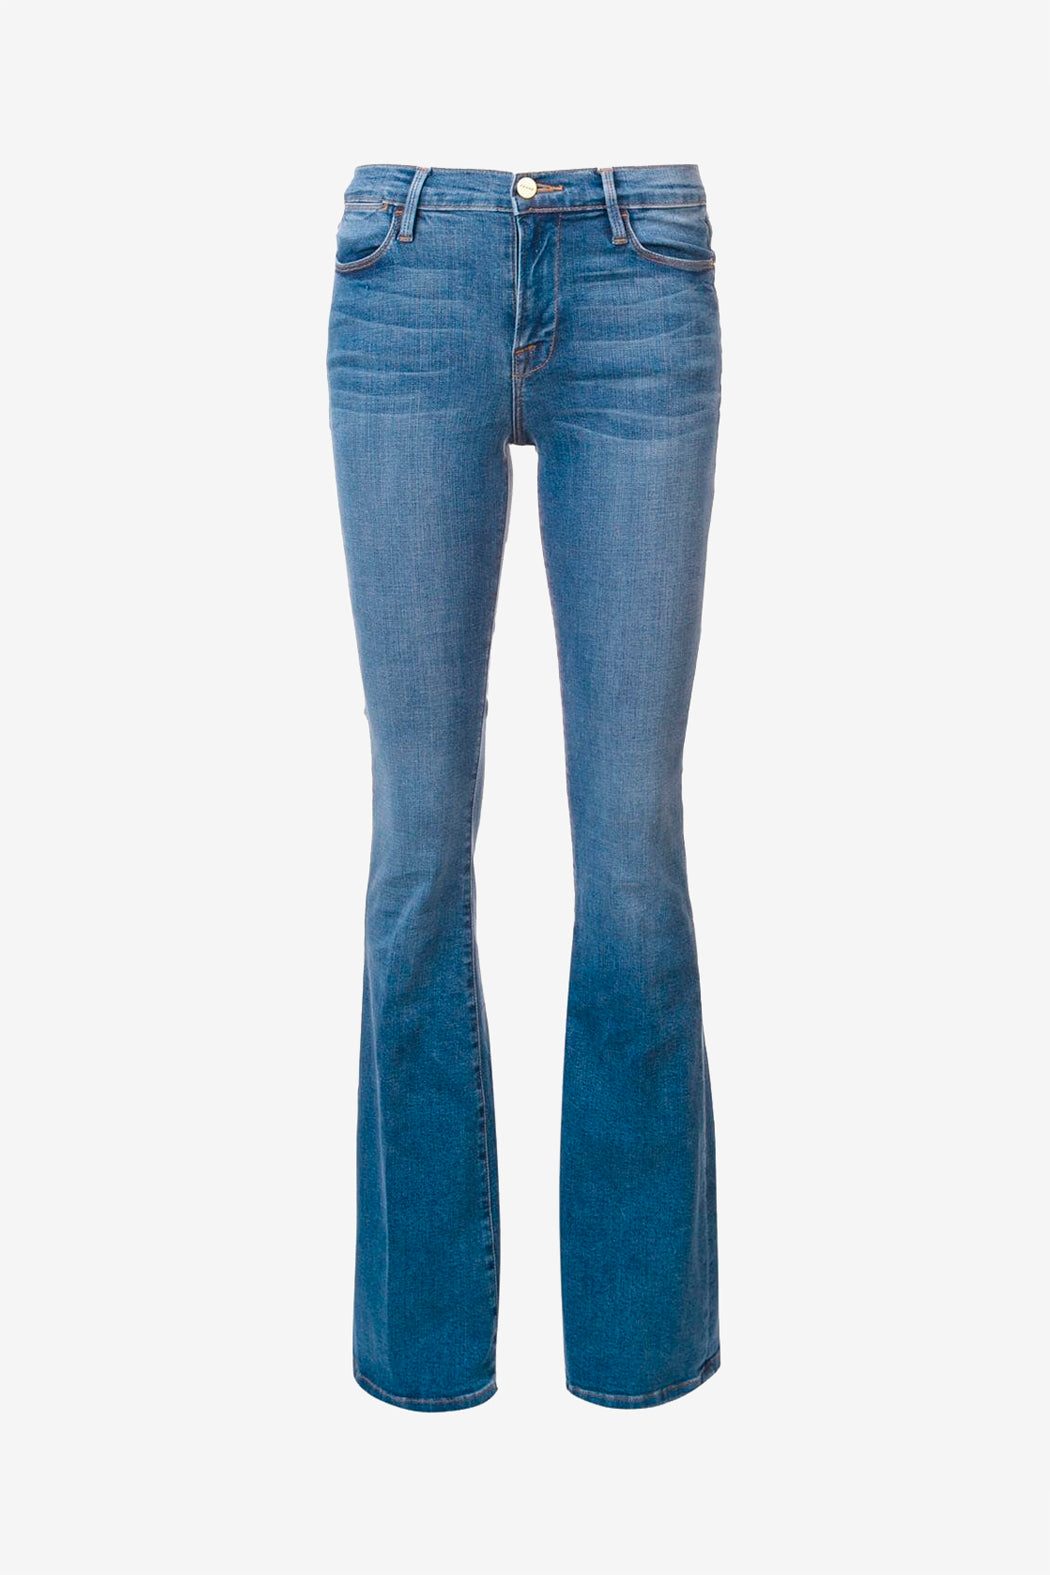 Light denim jeans with flared legs and belt loops